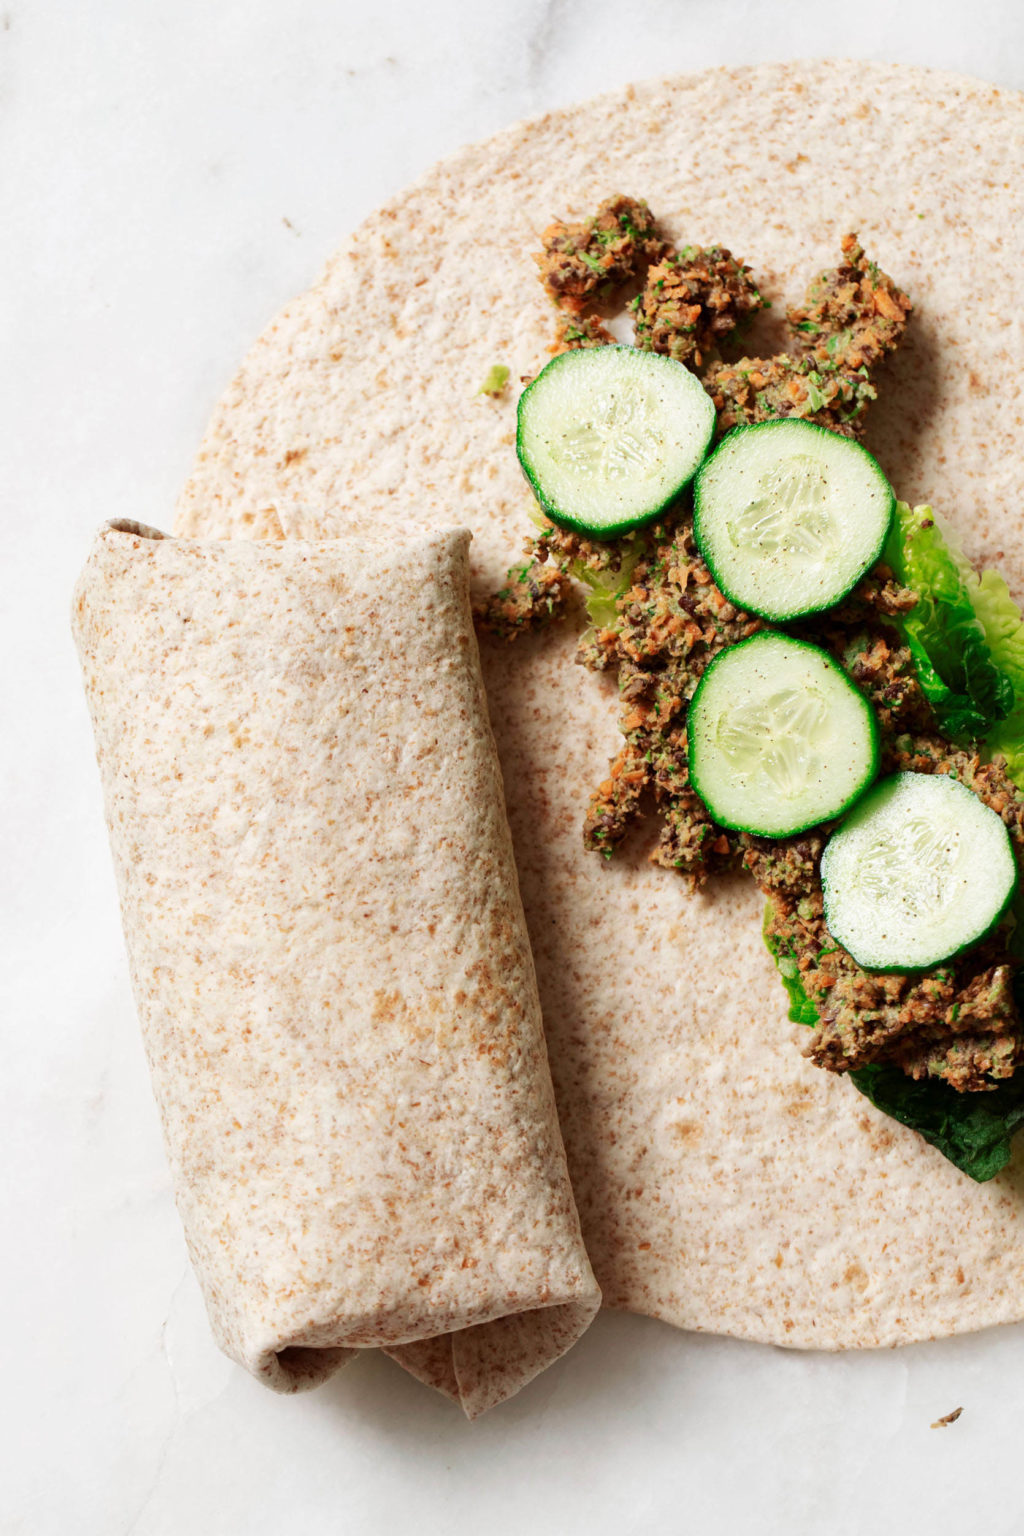 Lentil tahini wraps are being prepared on a white work surface. They're stuffed with cucumber slices and a lentil vegetable filling.